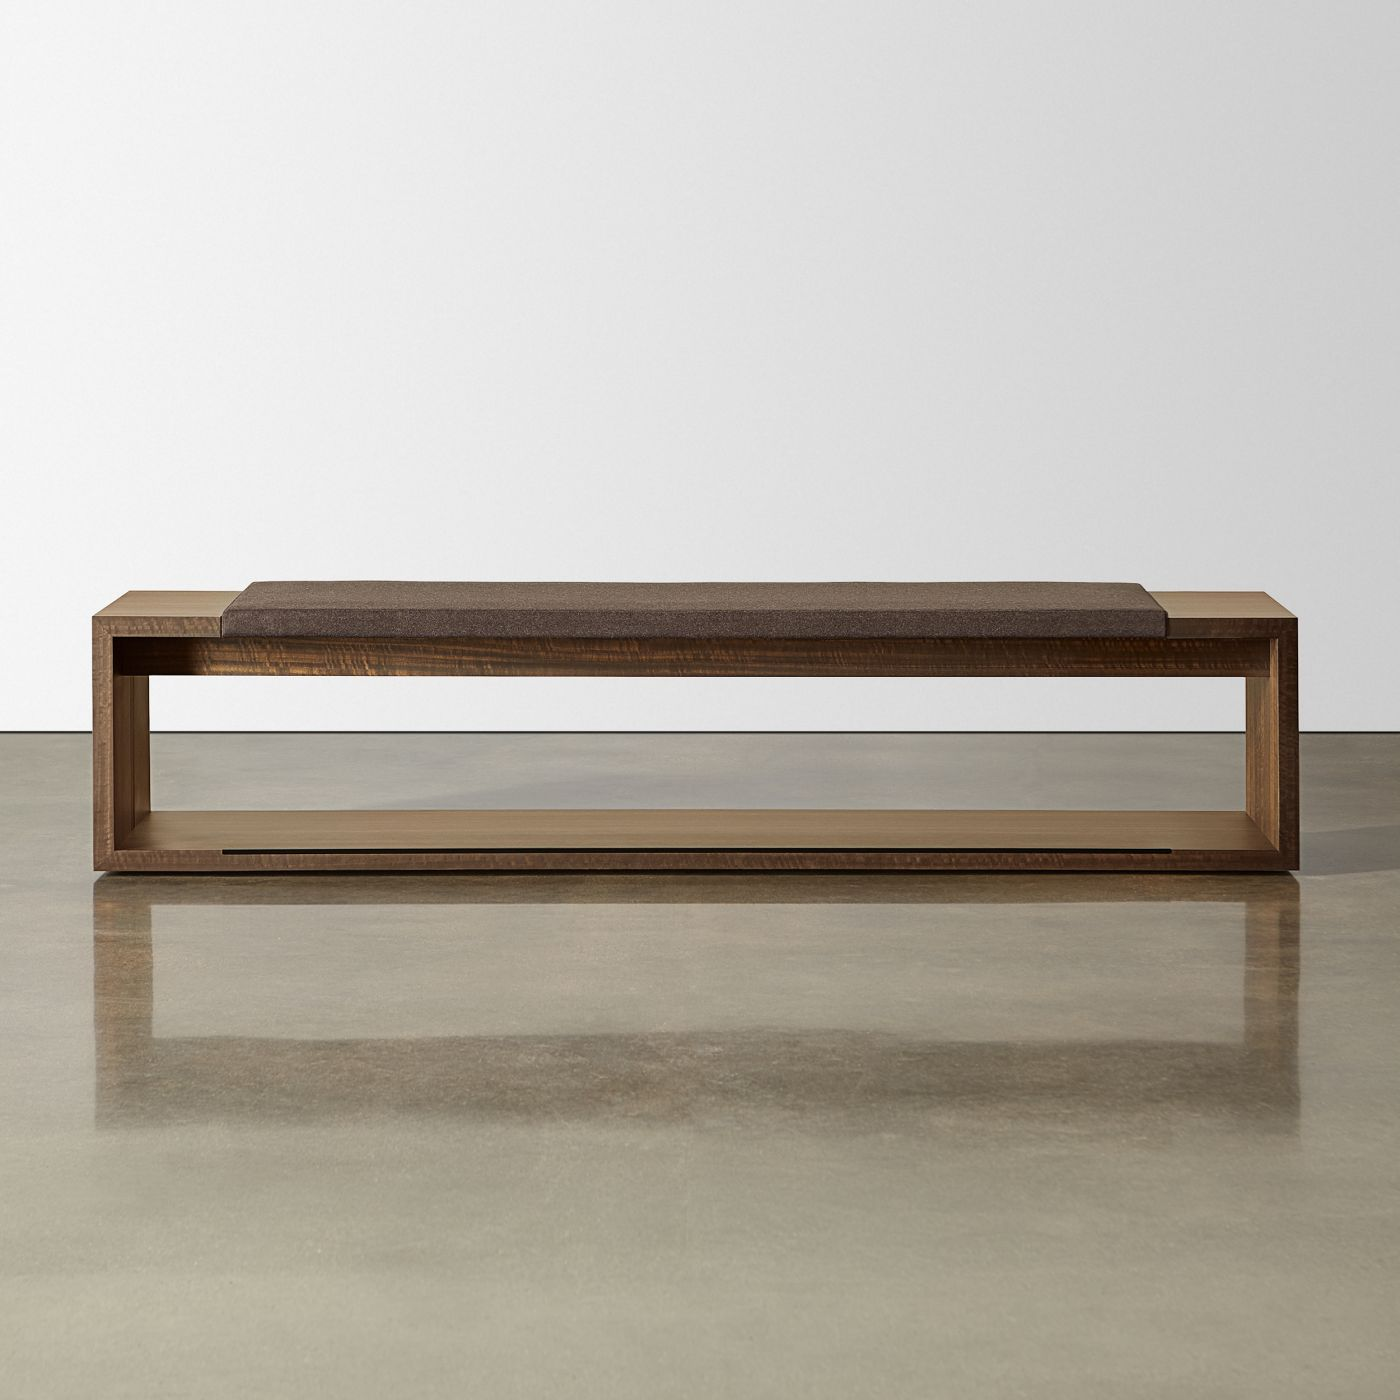 Each bench includes a gracious seating cushion and convenient end table surfaces.